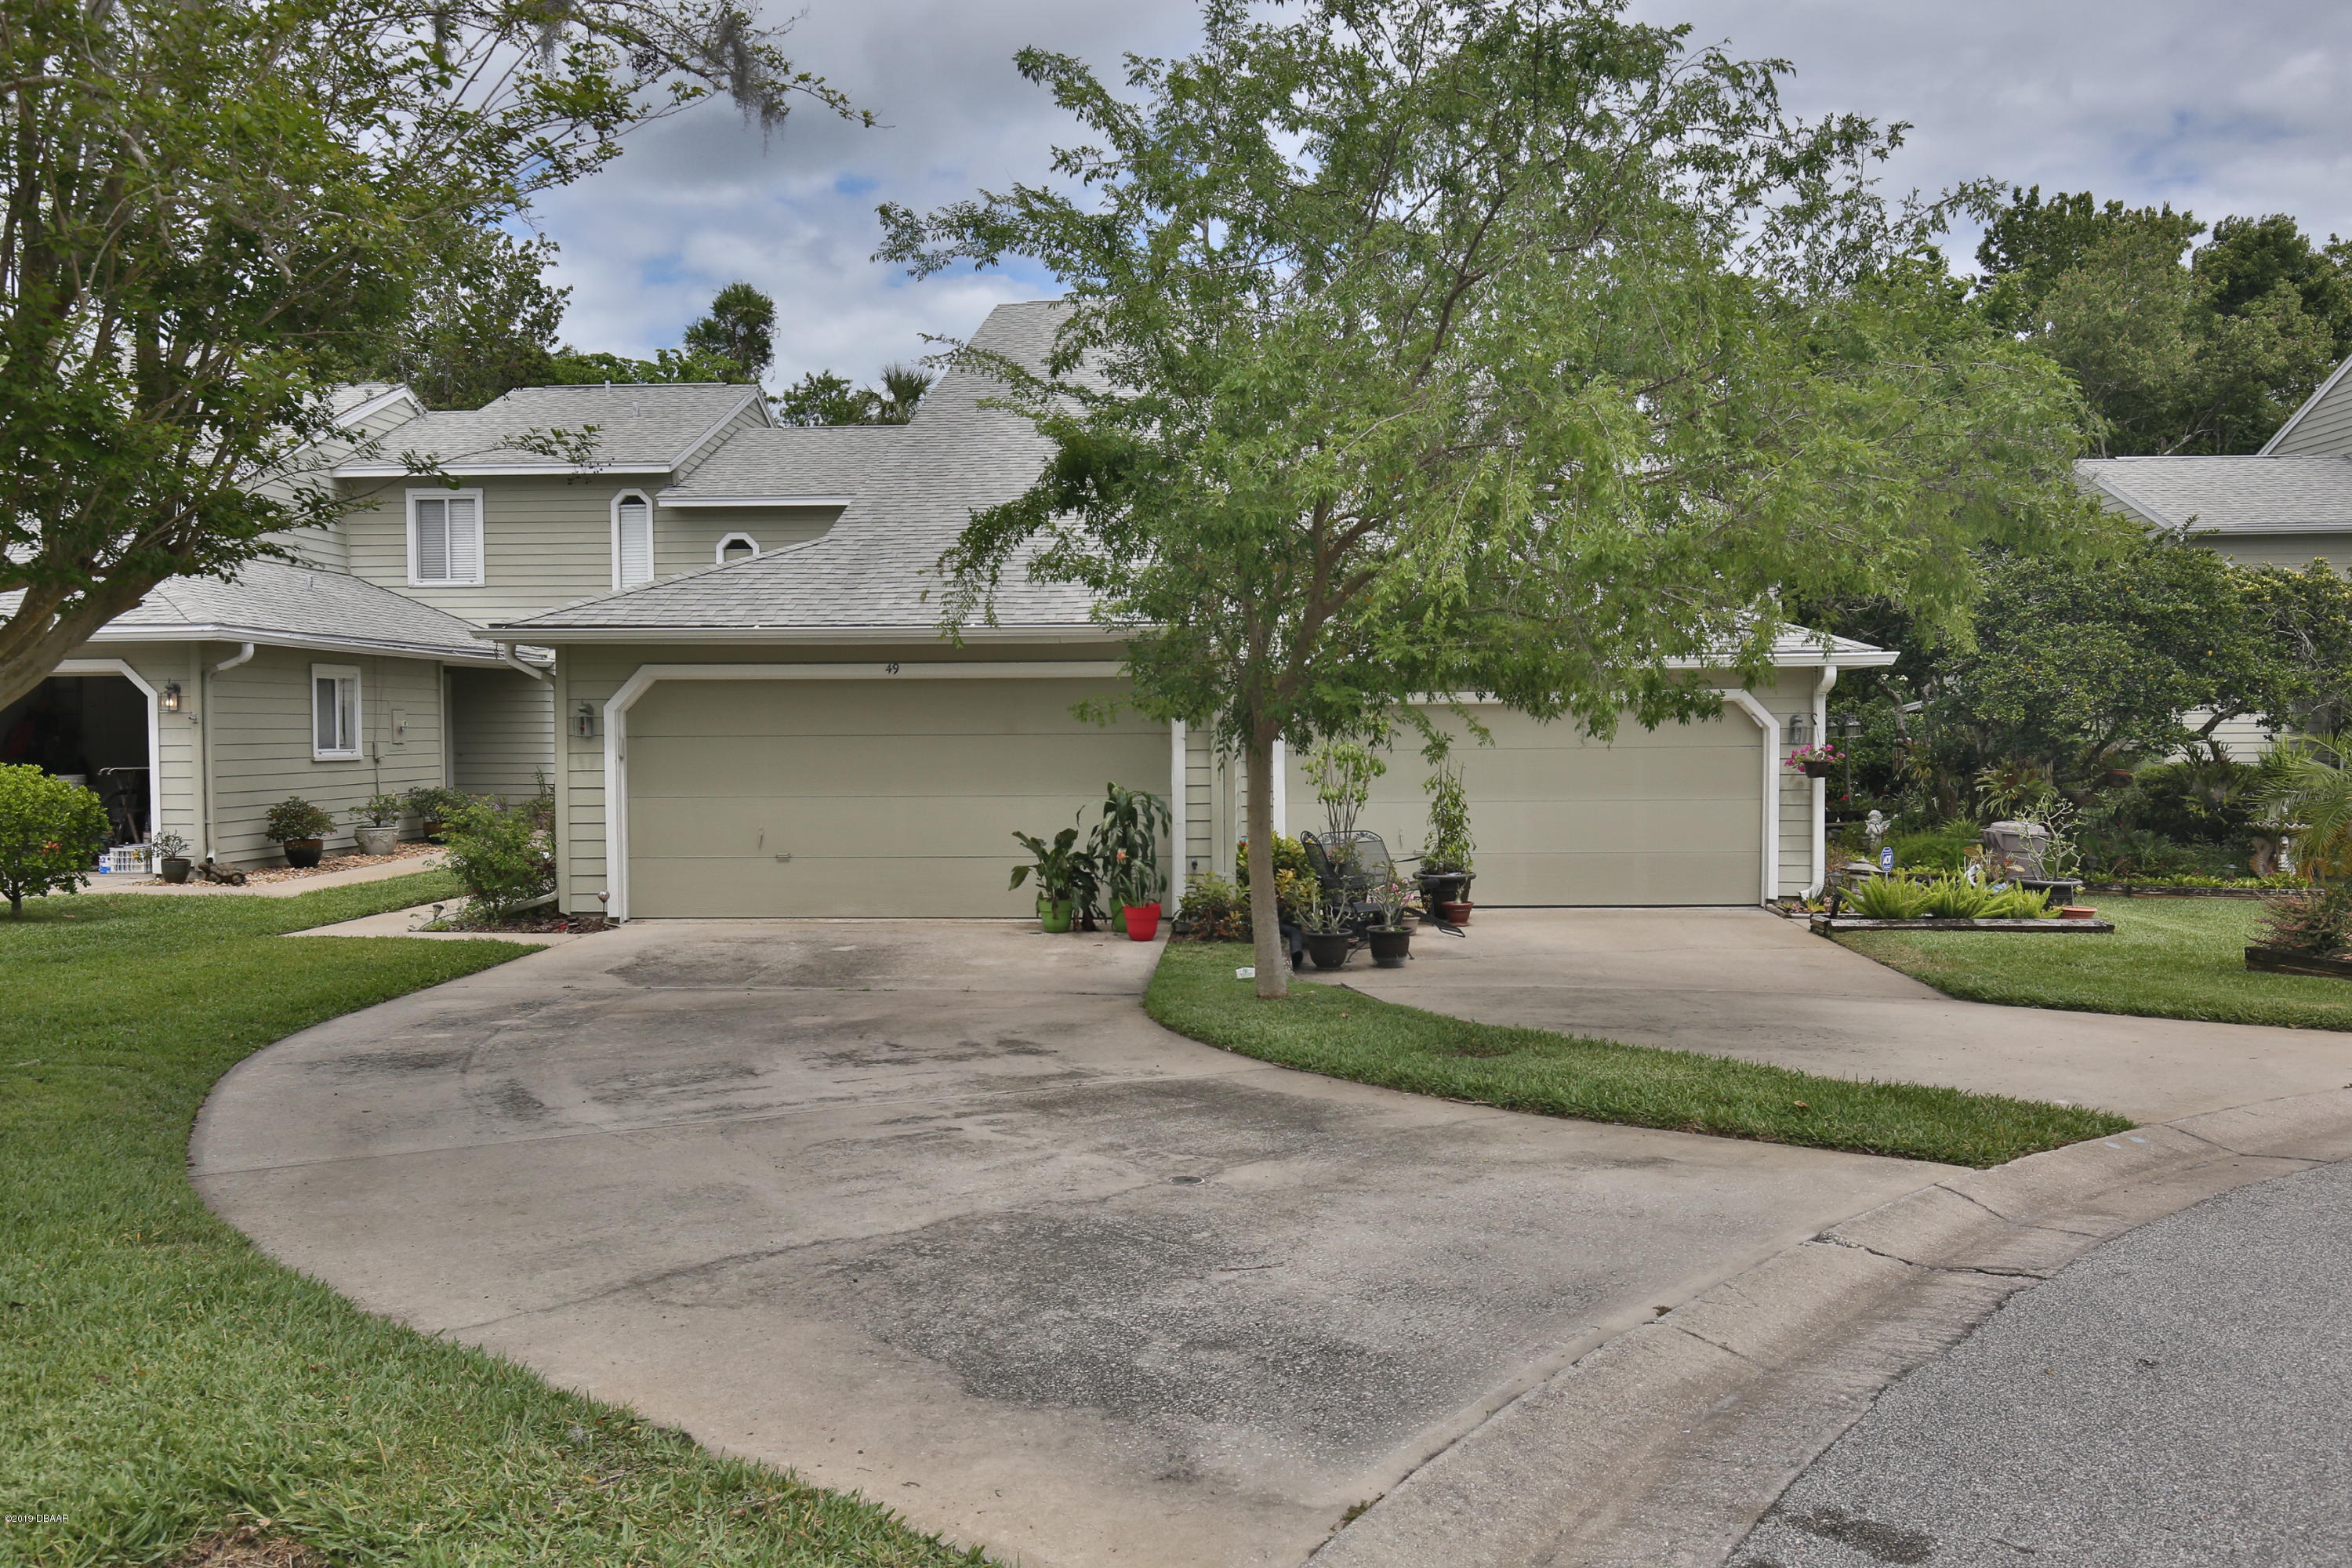 49 Misners Trail 32174 - One of Ormond Beach Homes for Sale